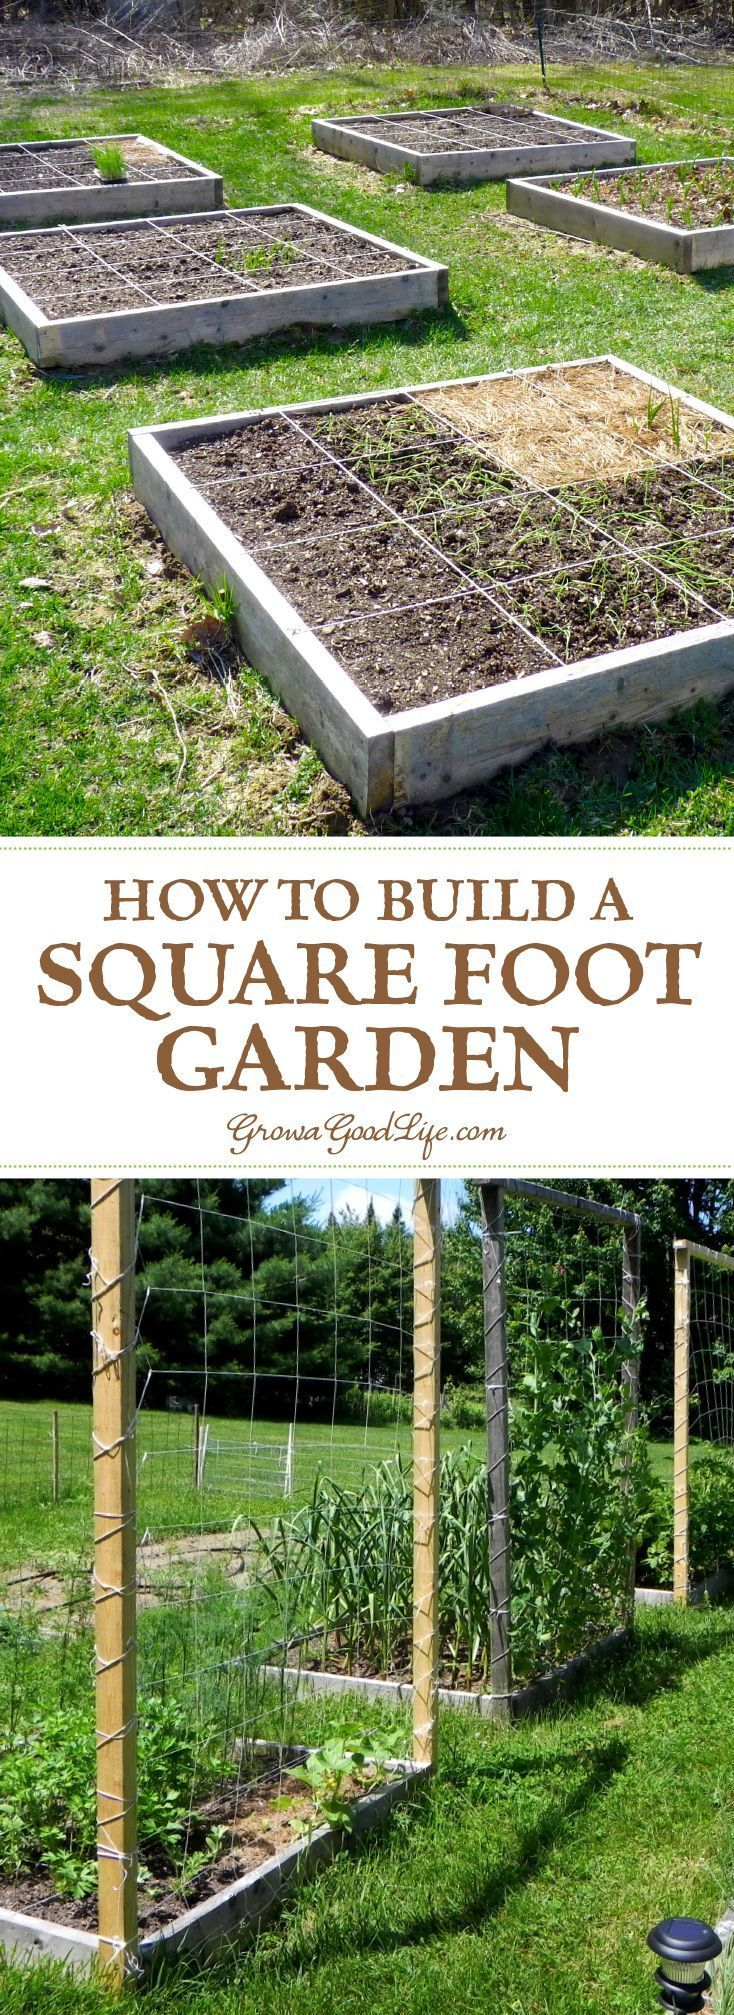 25 Best Ideas About Quick Garden On Pinterest Growing Plants